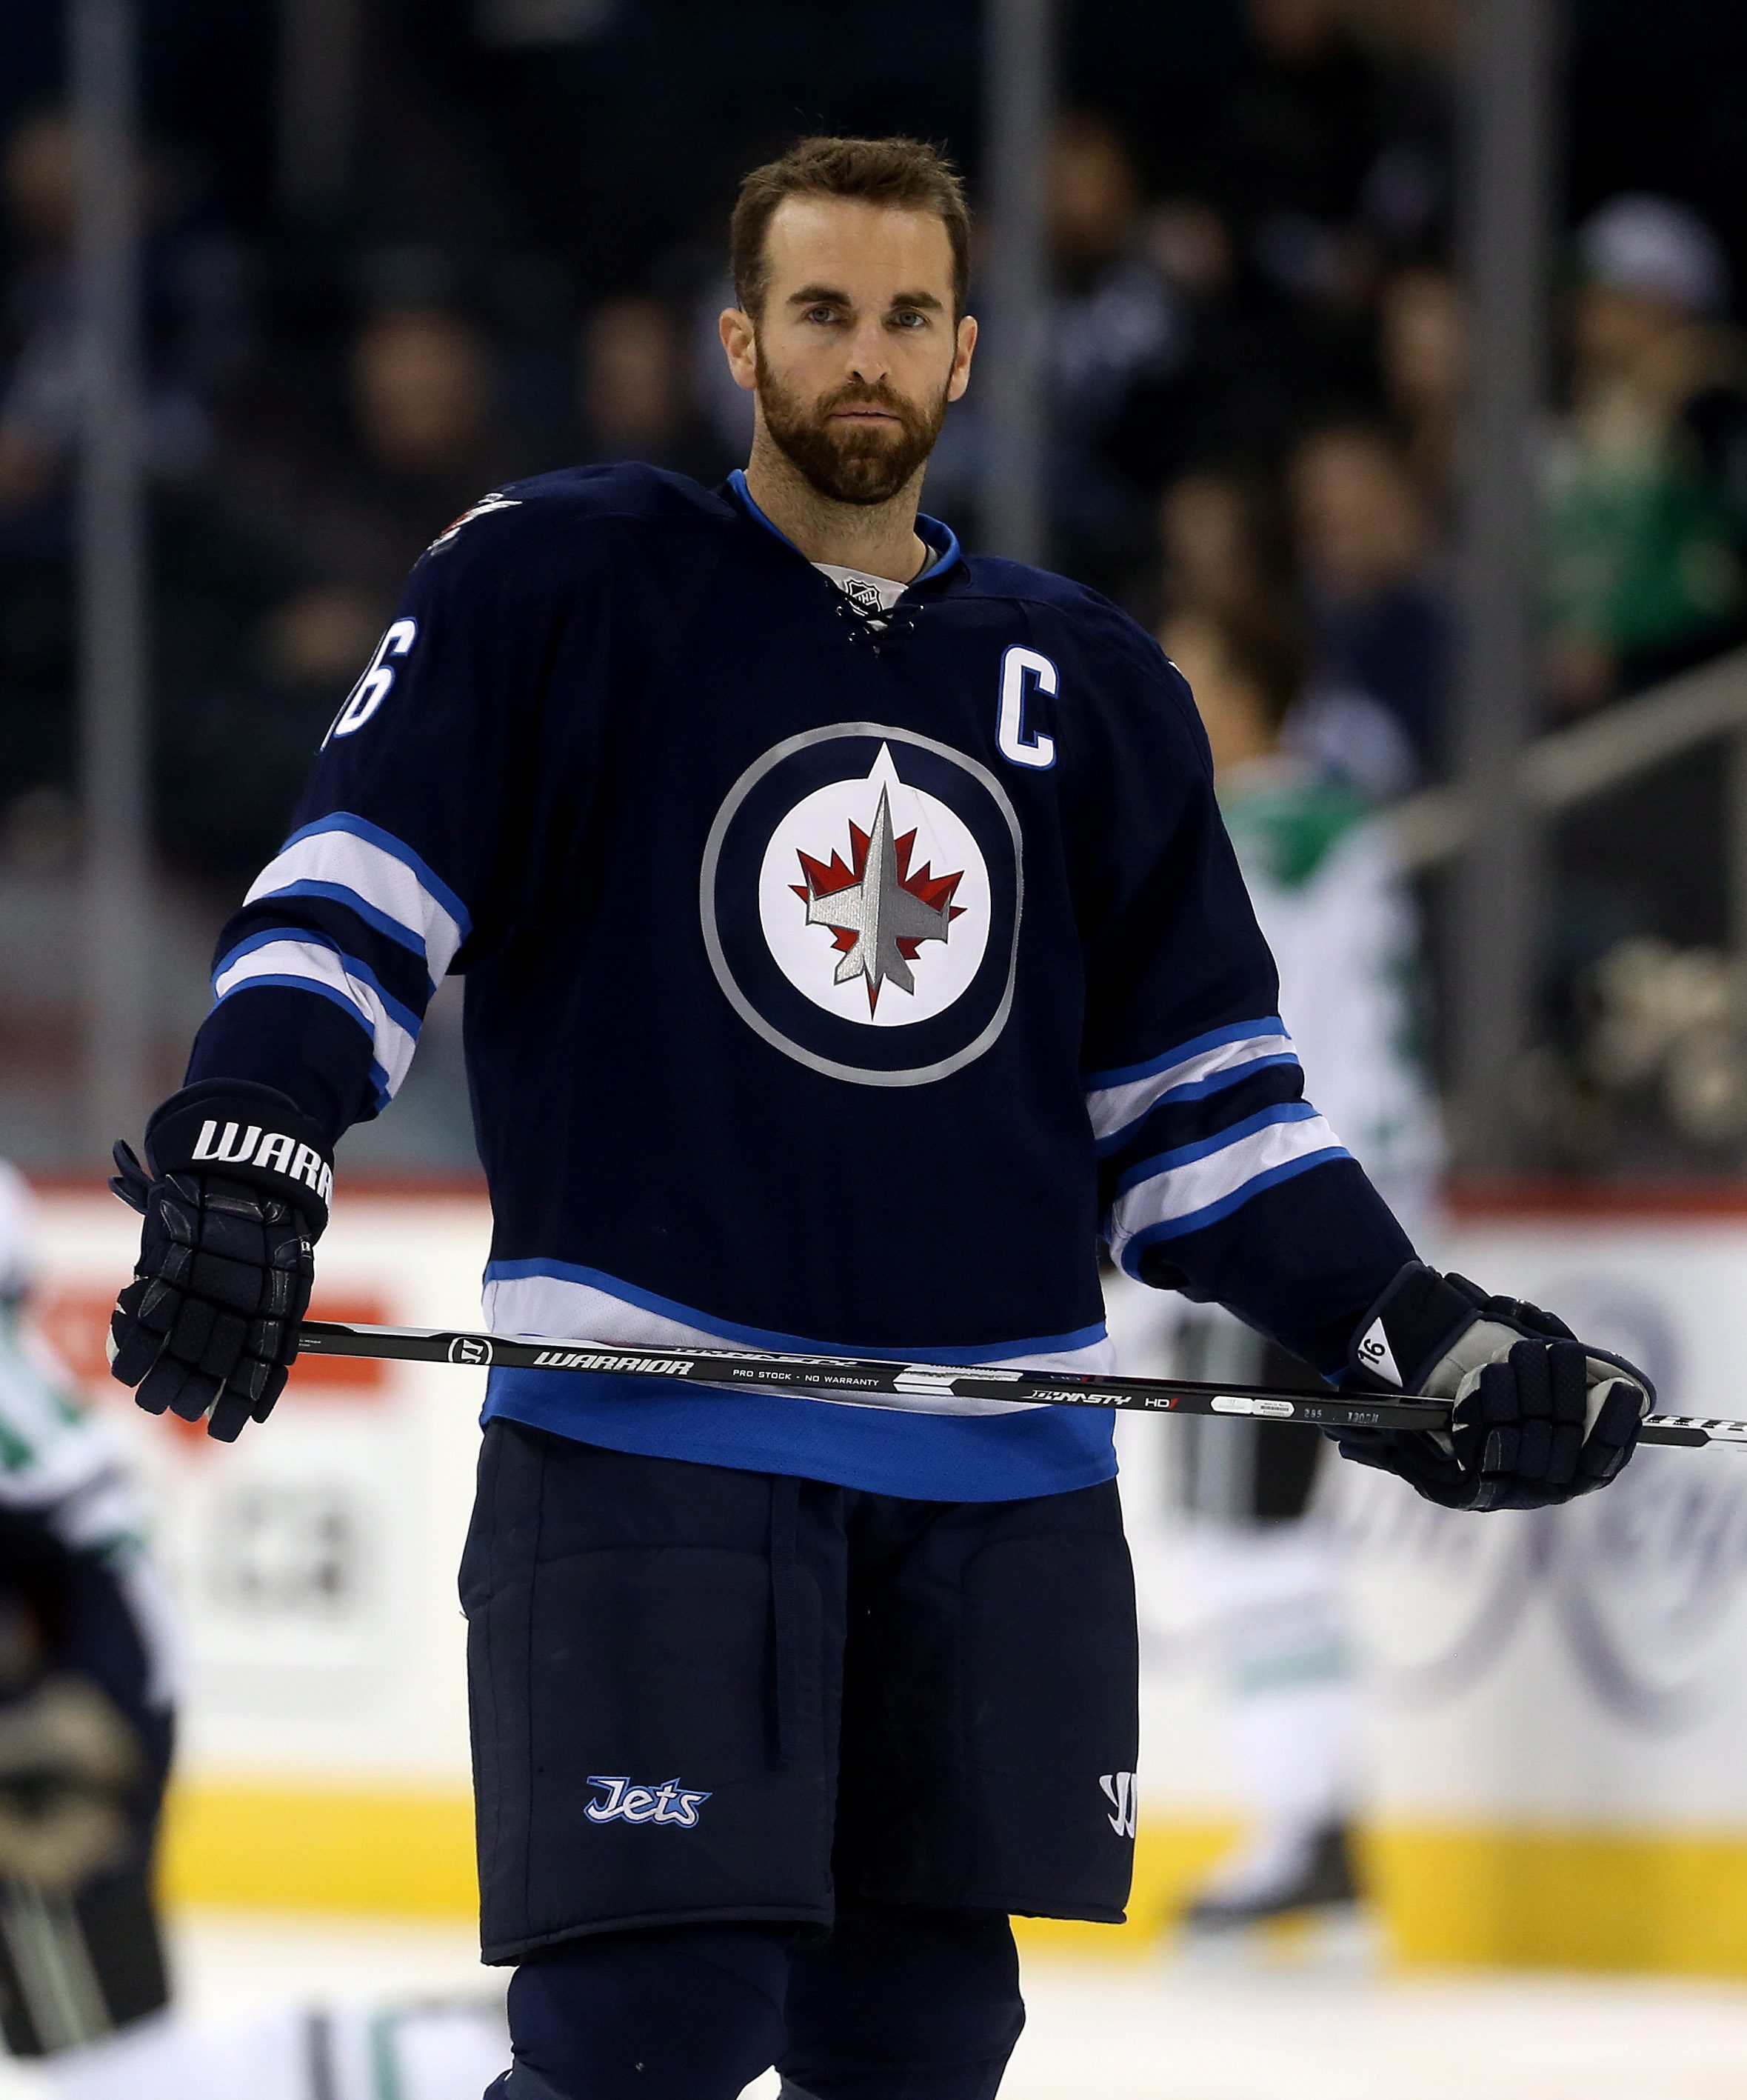 Winnipeg Jets' Andrew Ladd (16)warms up as the Jets prepare to play the Dallas Stars in an NHL hockey game Tuesday, Feb. 23, 2016, in Winnipeg, Manitoba. (Trevor Hagan/The Canadian Press via AP)